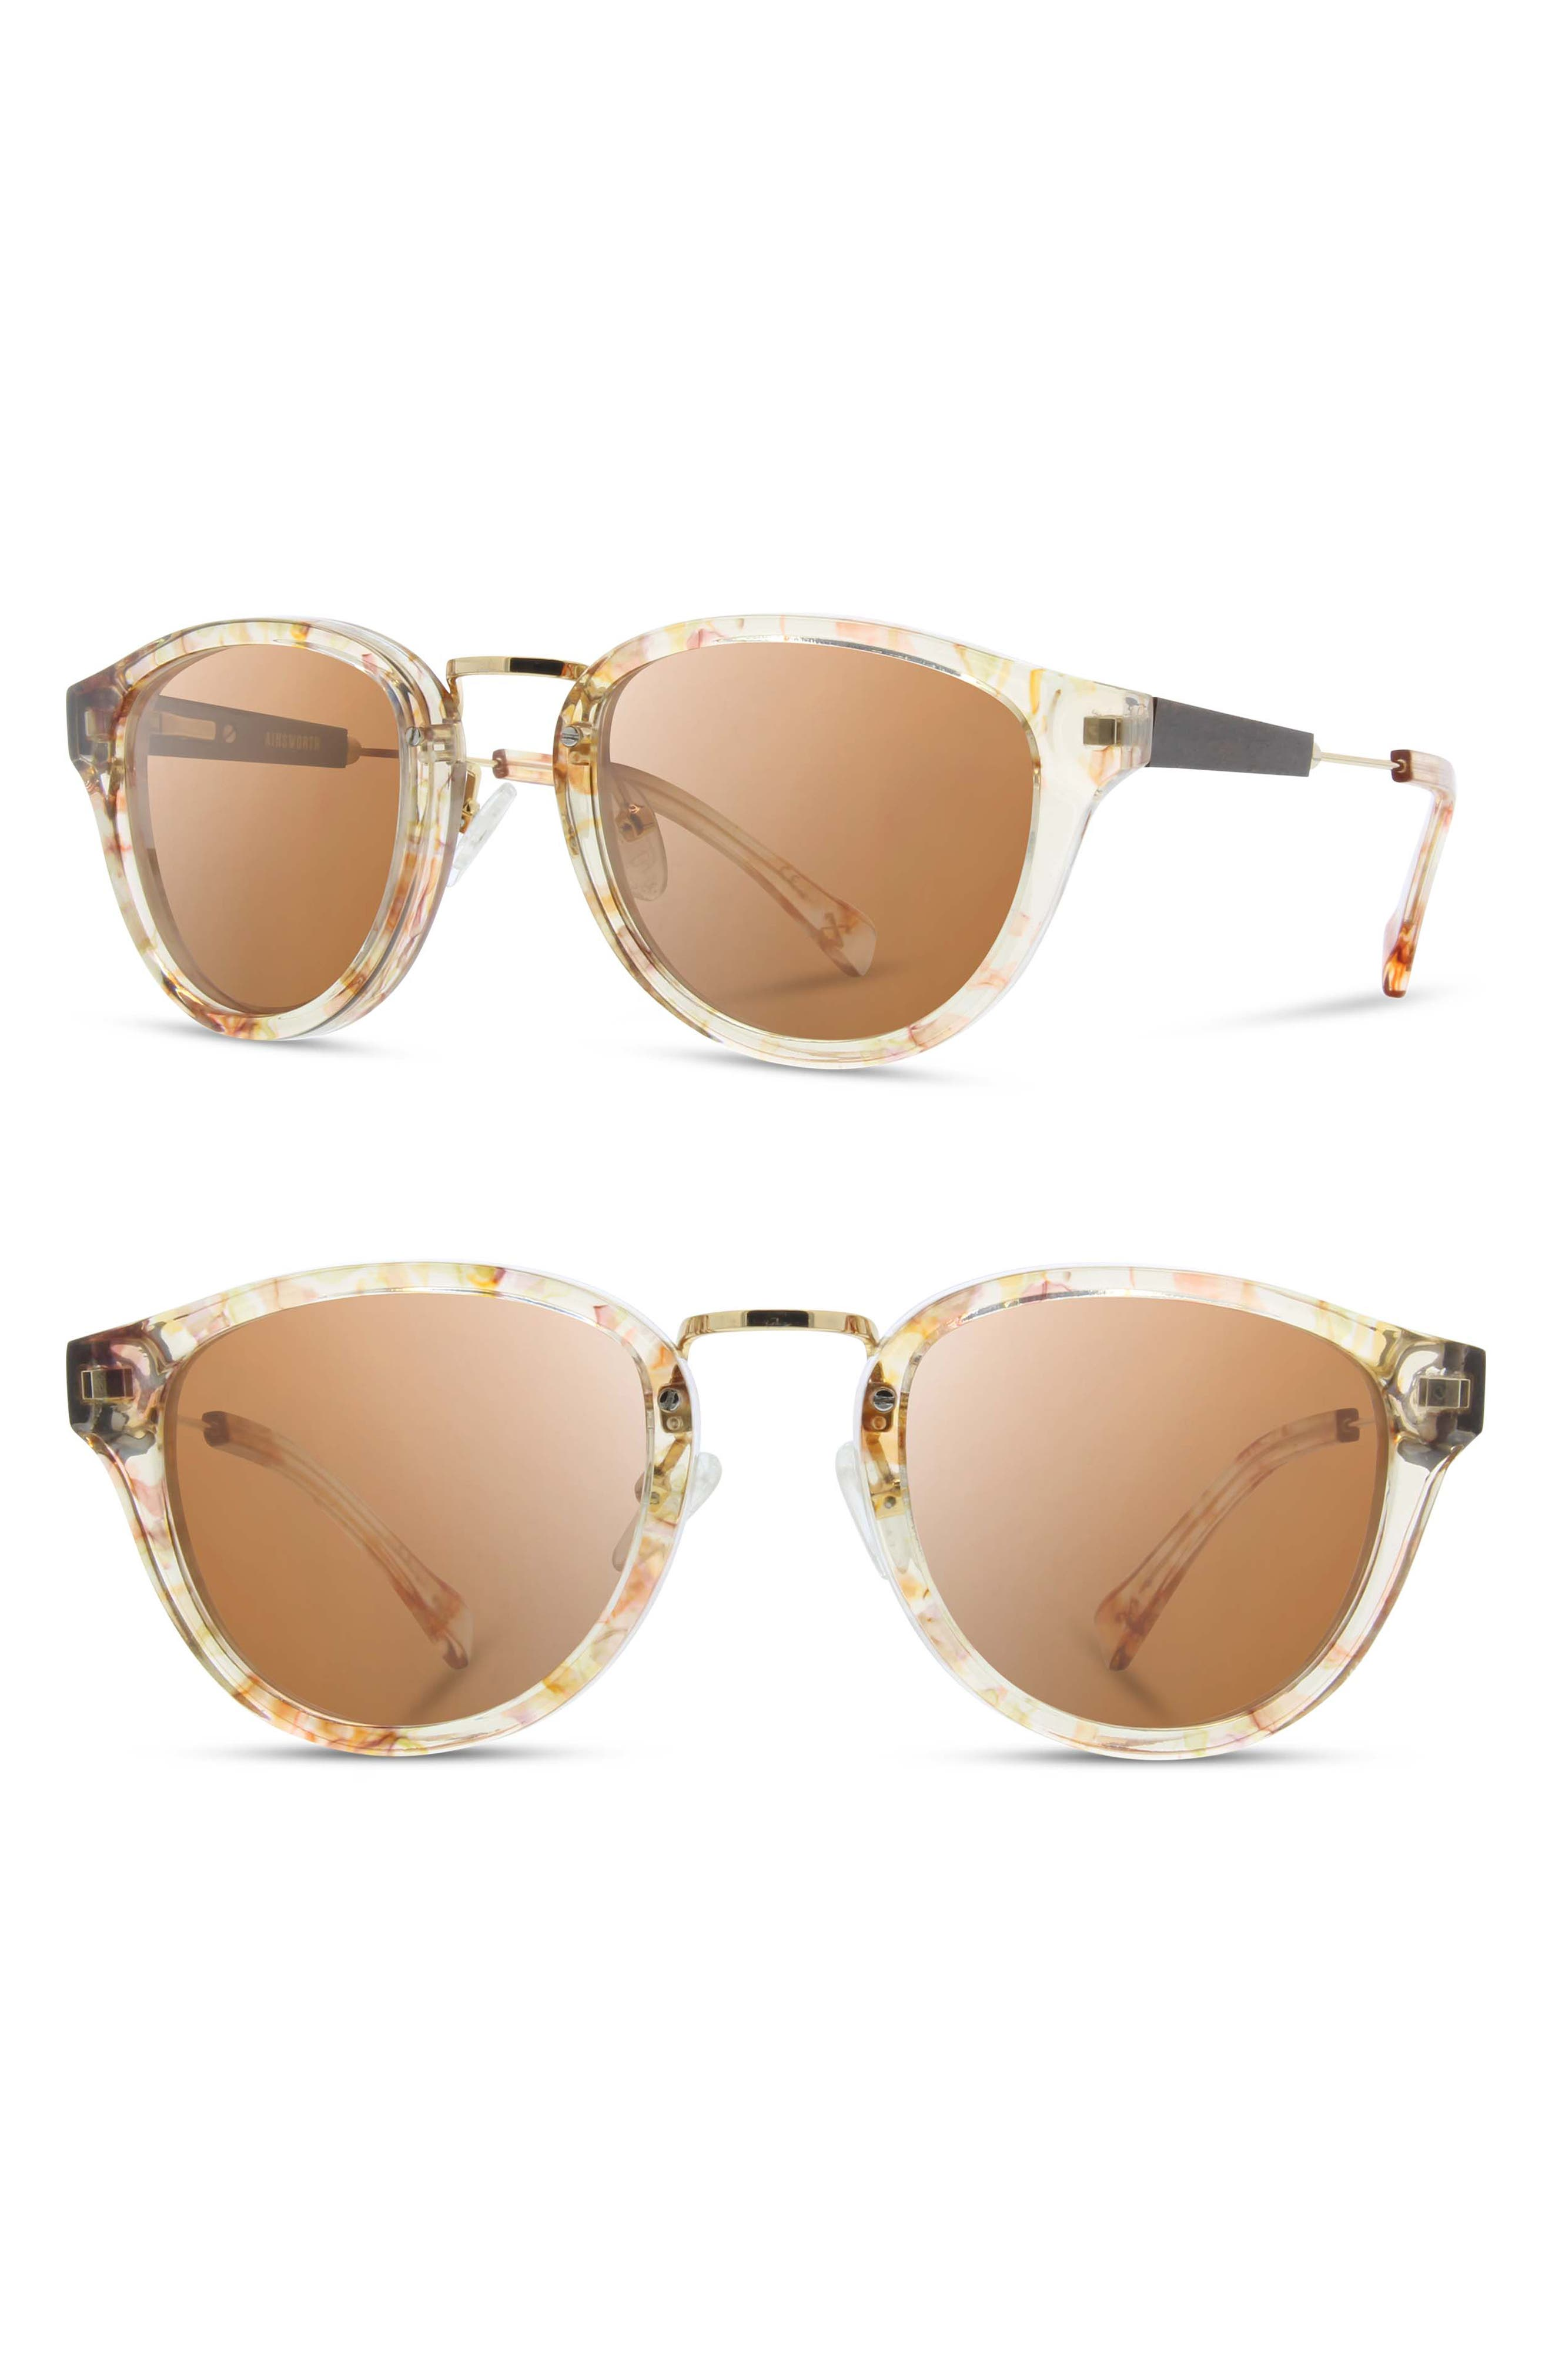 'Ainsworth' 49mm Polarized Sunglasses,                             Main thumbnail 1, color,                             Blossom/ Gold/ Brown